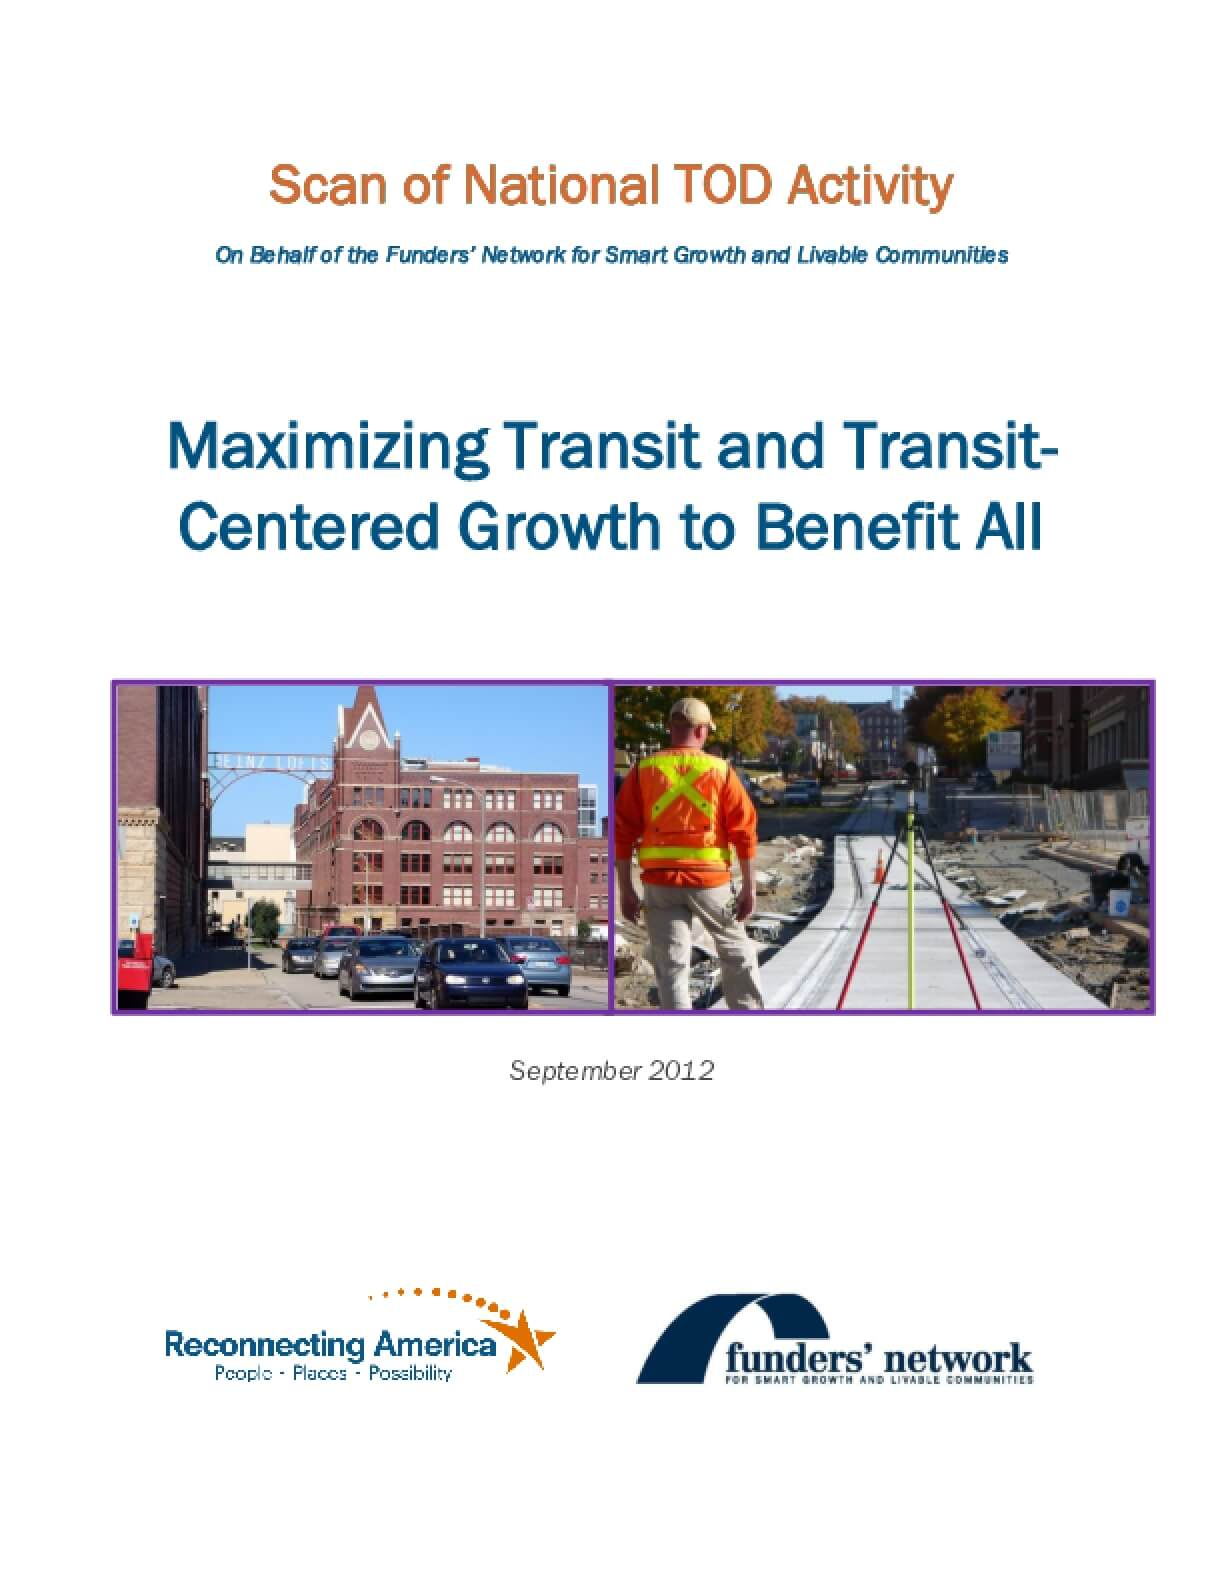 Maximizing Transit and Transit-centered Growth to Benefit All